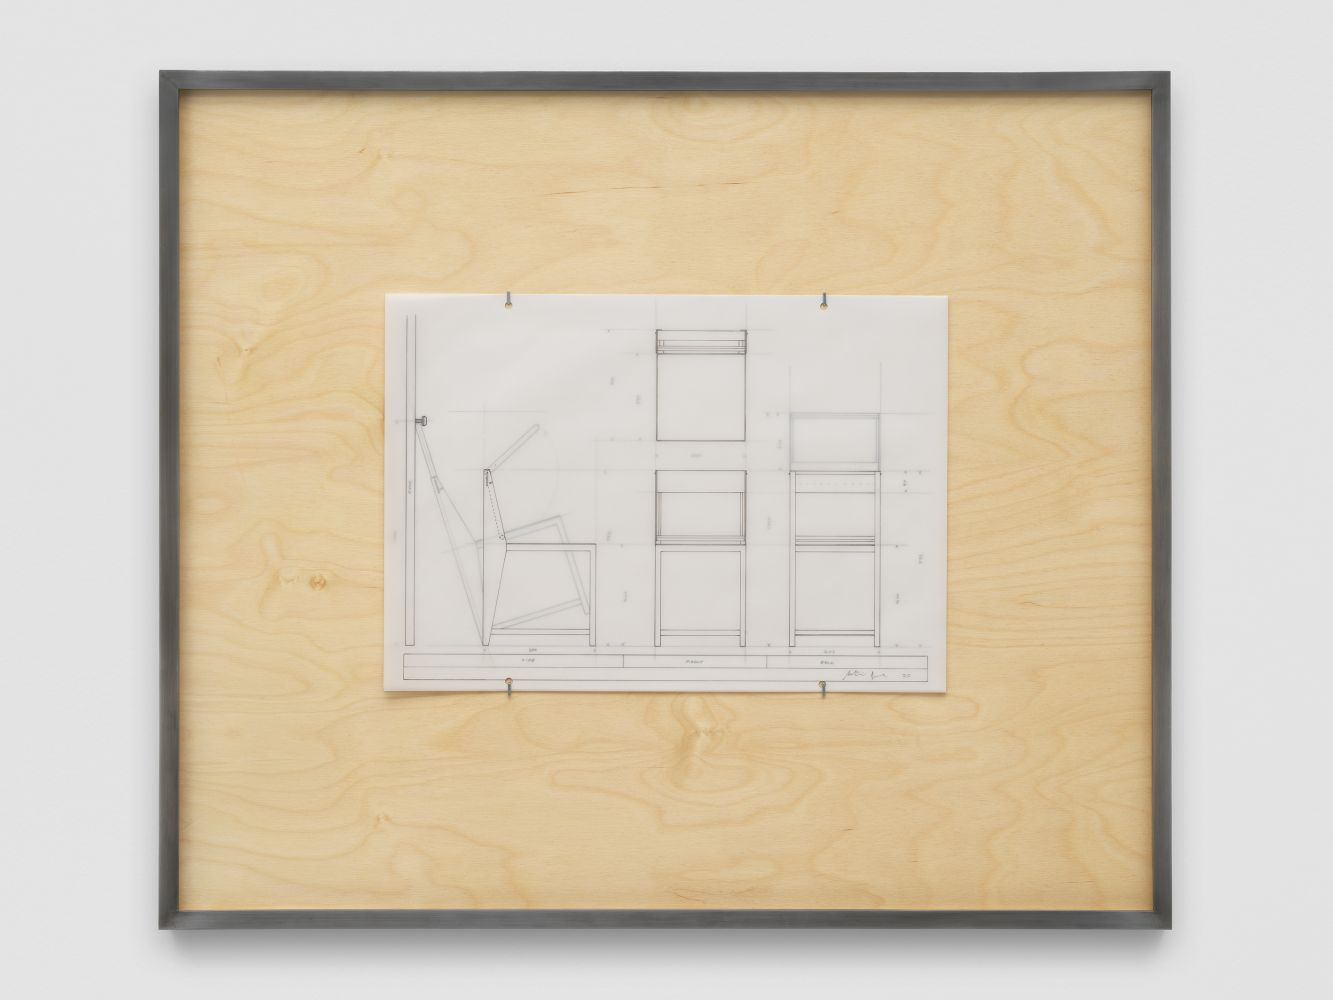 NLF / CH02 2020 Patinated steel, stained plywood, pen, tracing paper 75.5 x 64 x 4 cm / 29 5/8 x 25 1/4 x 1 5/8 in SOLD